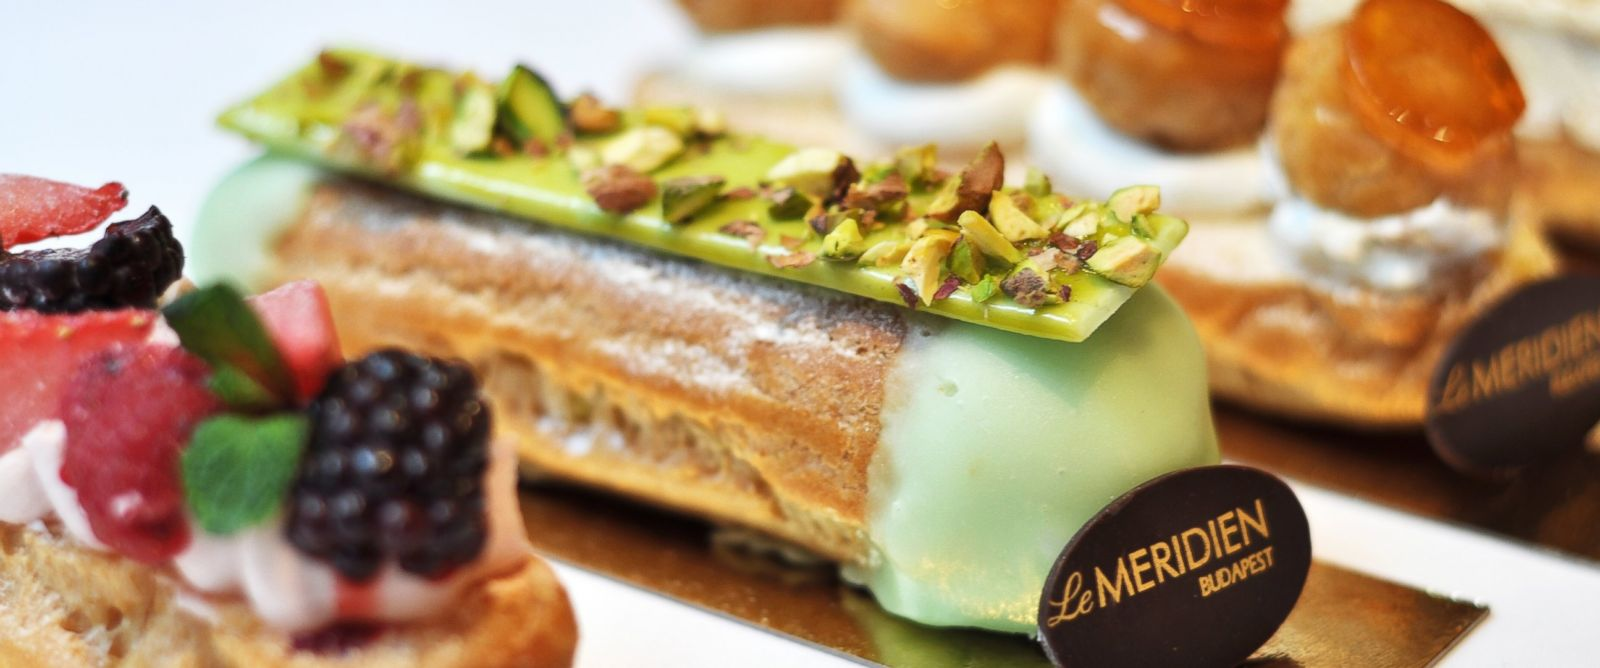 PHOTO: Le Meridiens new regionally inspired eclairs in Budapest.